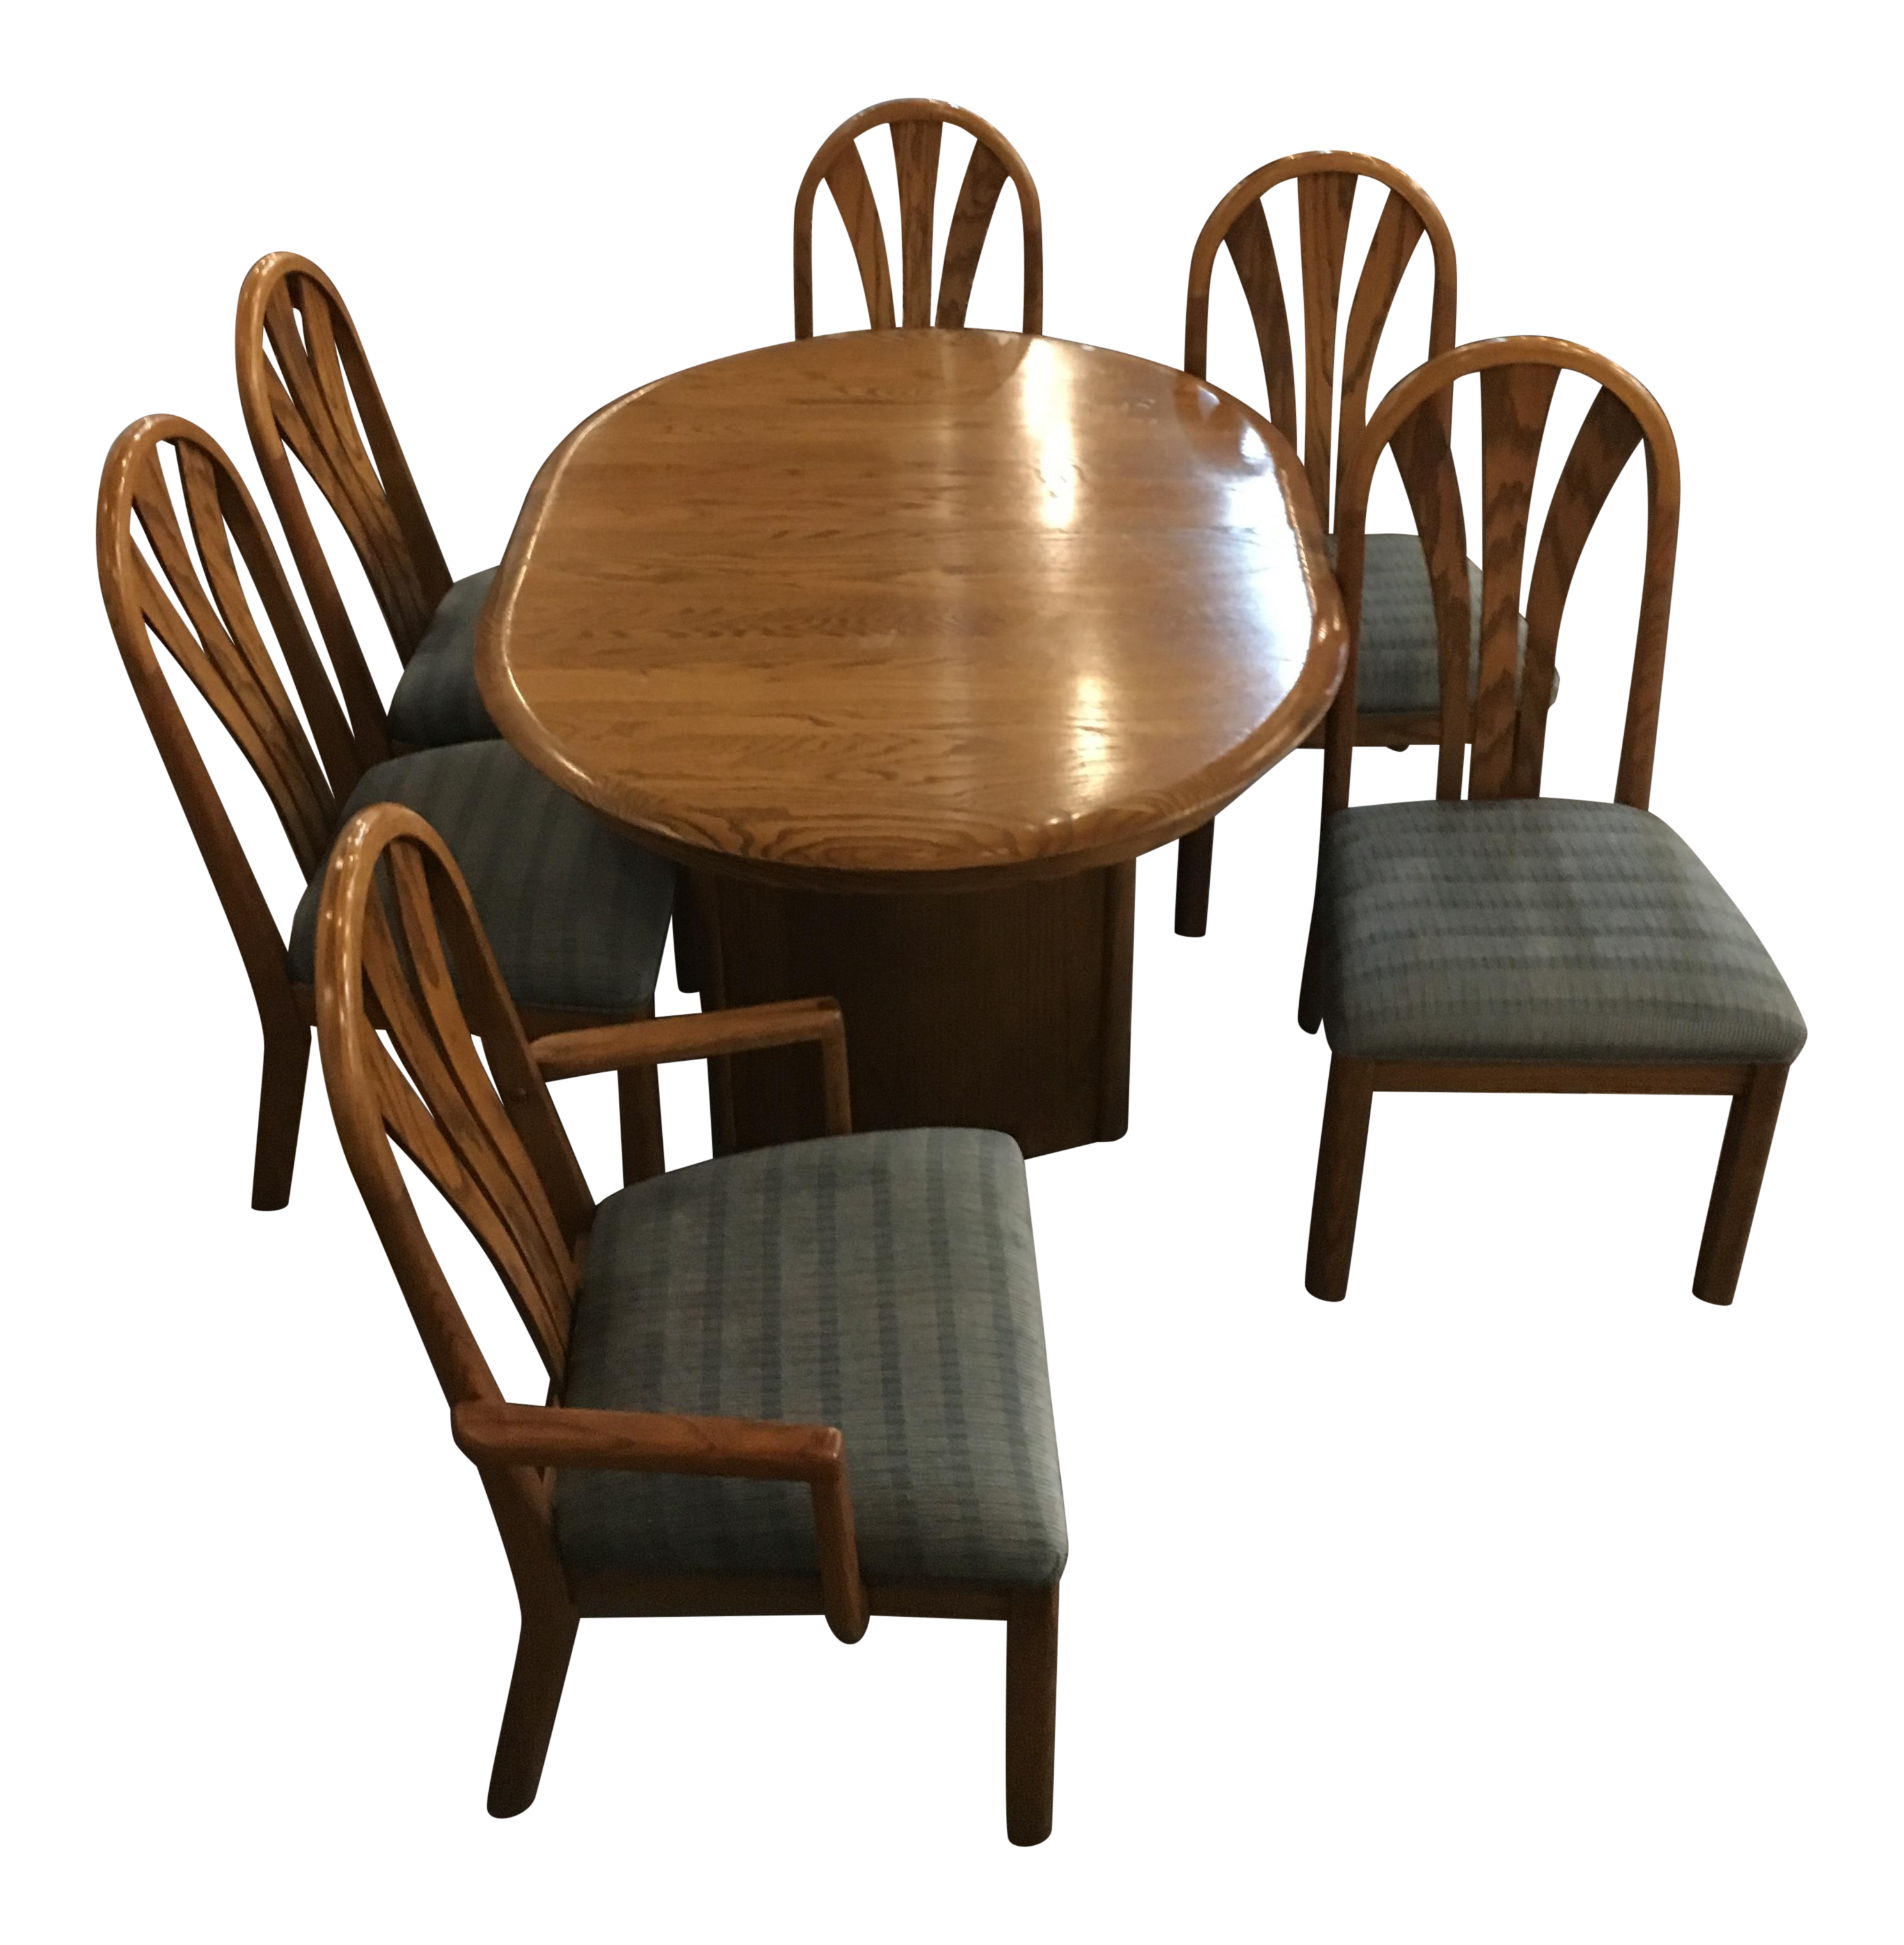 Kallen And Wamboldt Dining Room Table U0026 Chairs   Set ...